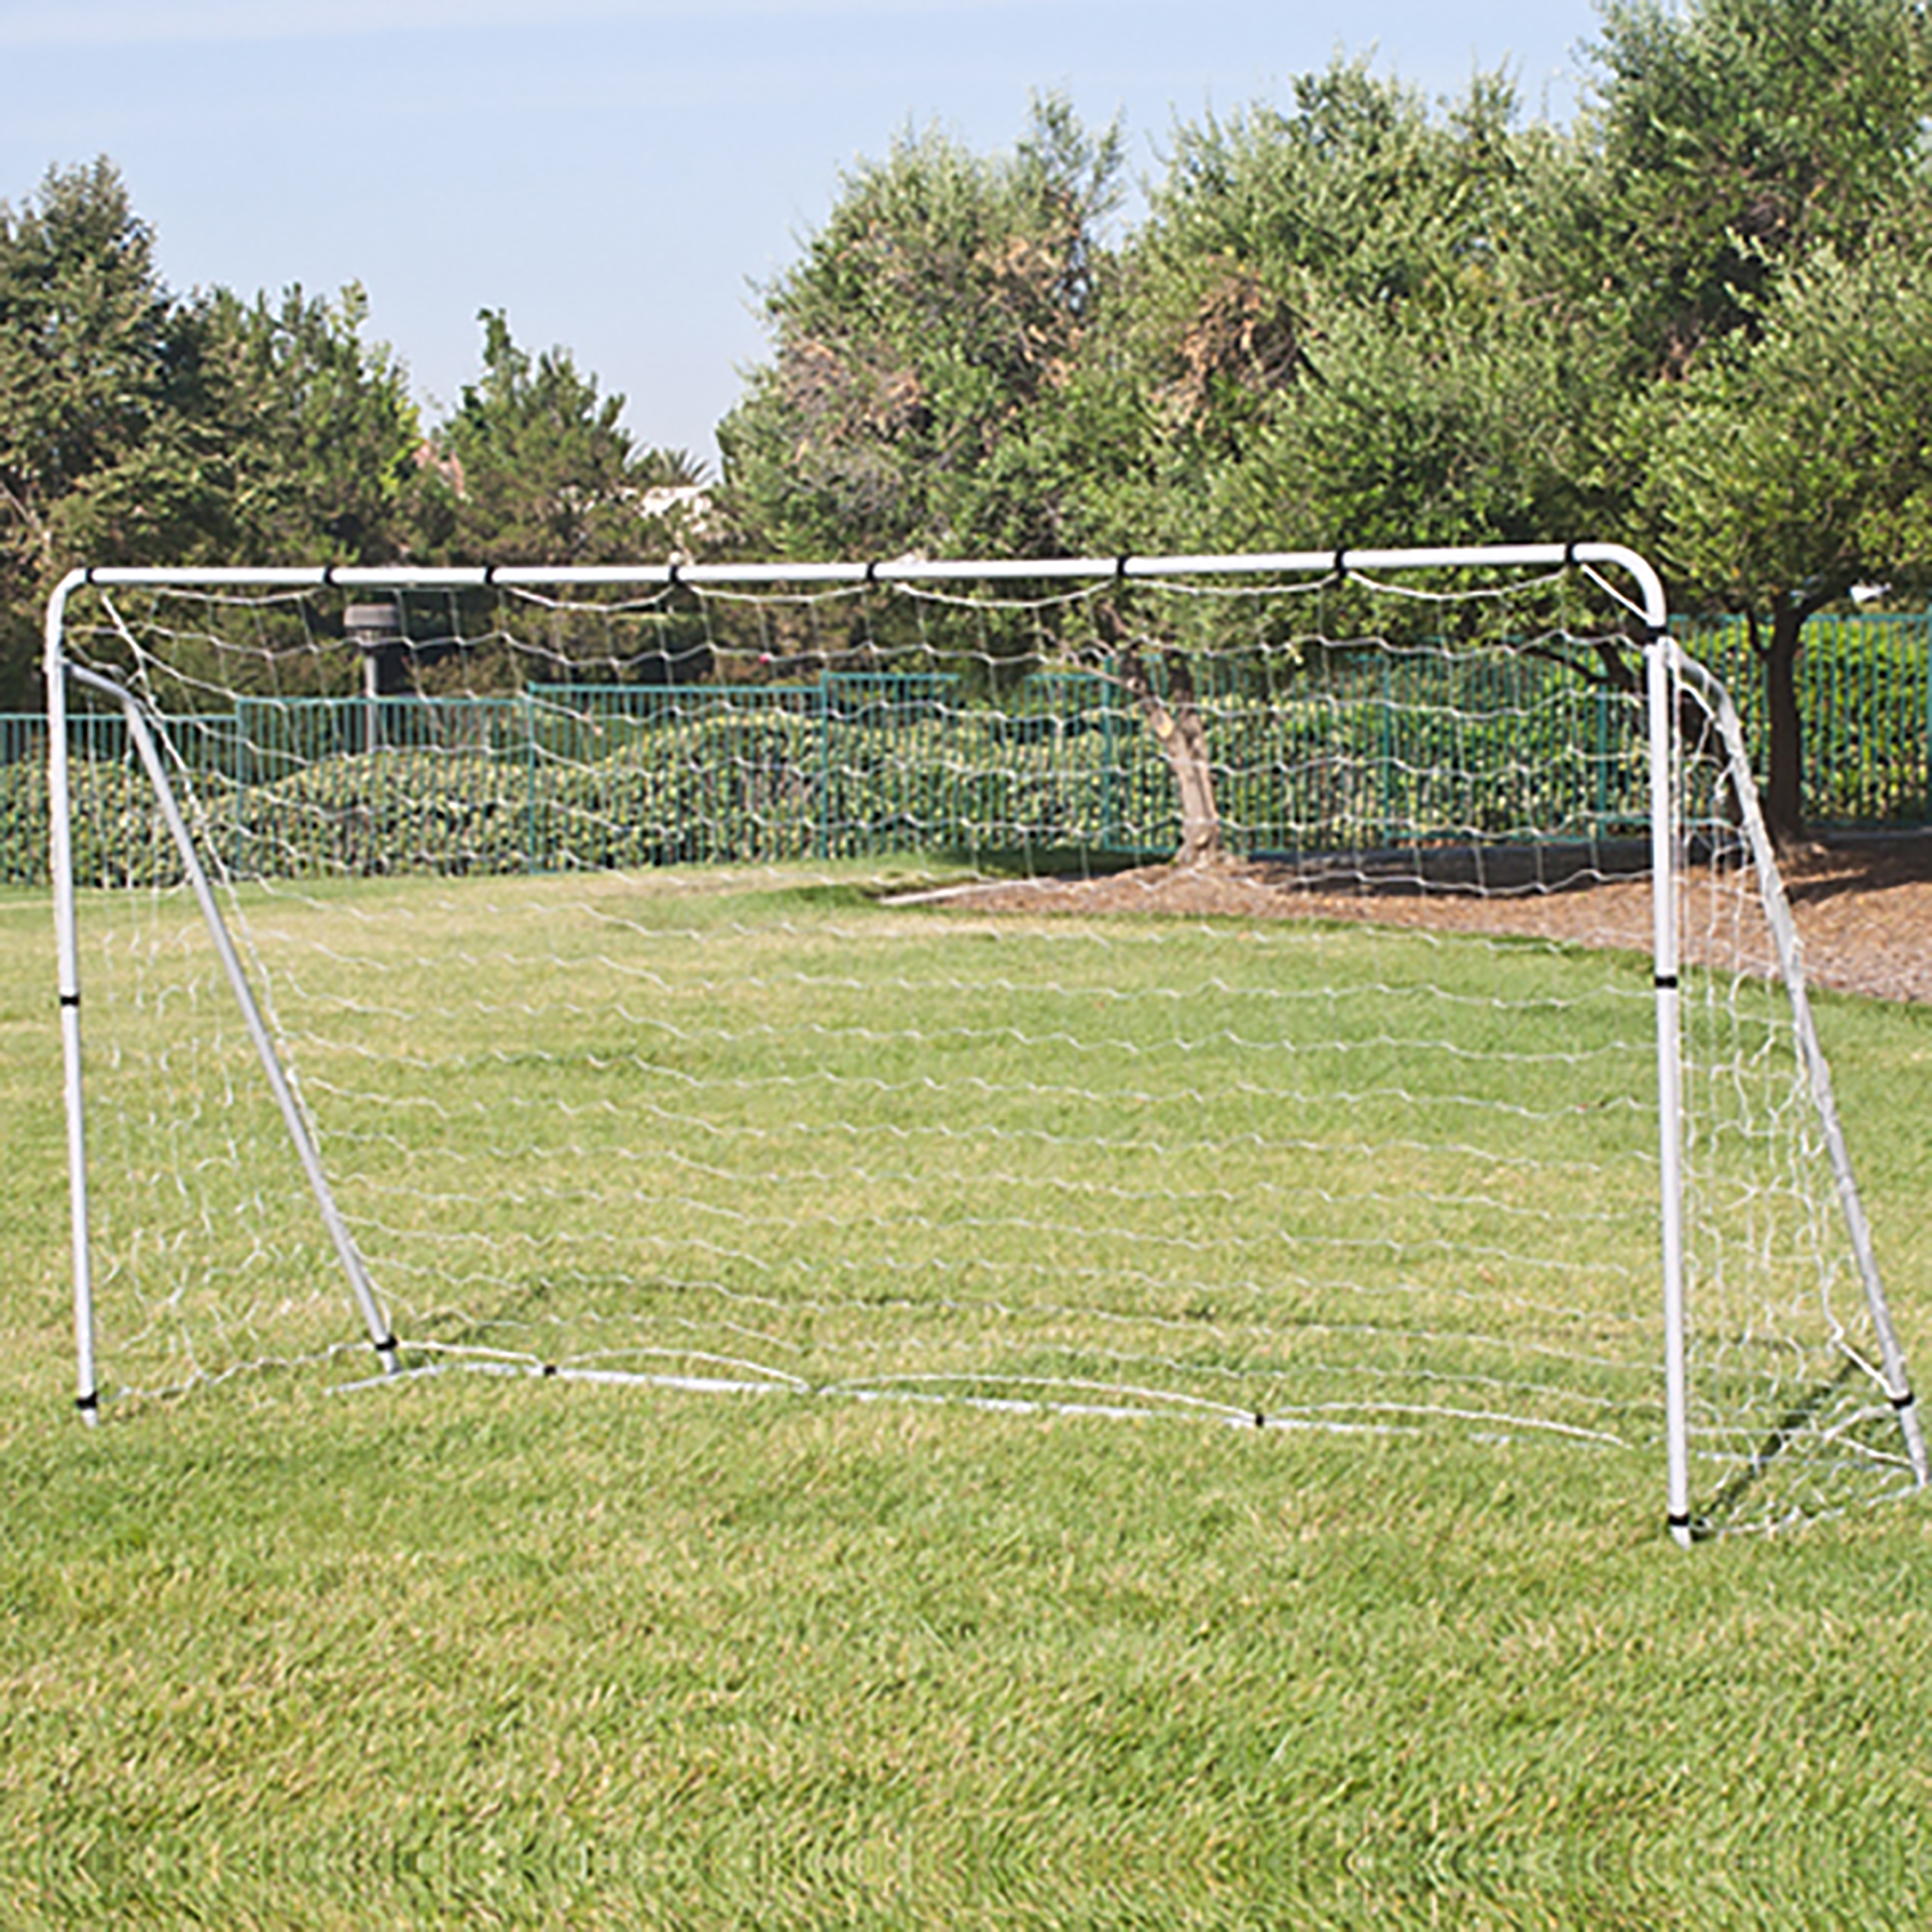 Best Choice Products 12x6ft Portable Weather-Resistant Steel Frame Soccer Goal Sports Training Tool Accessory for Outdoor, Backyard w/ Net, Straps, and Anchors - White